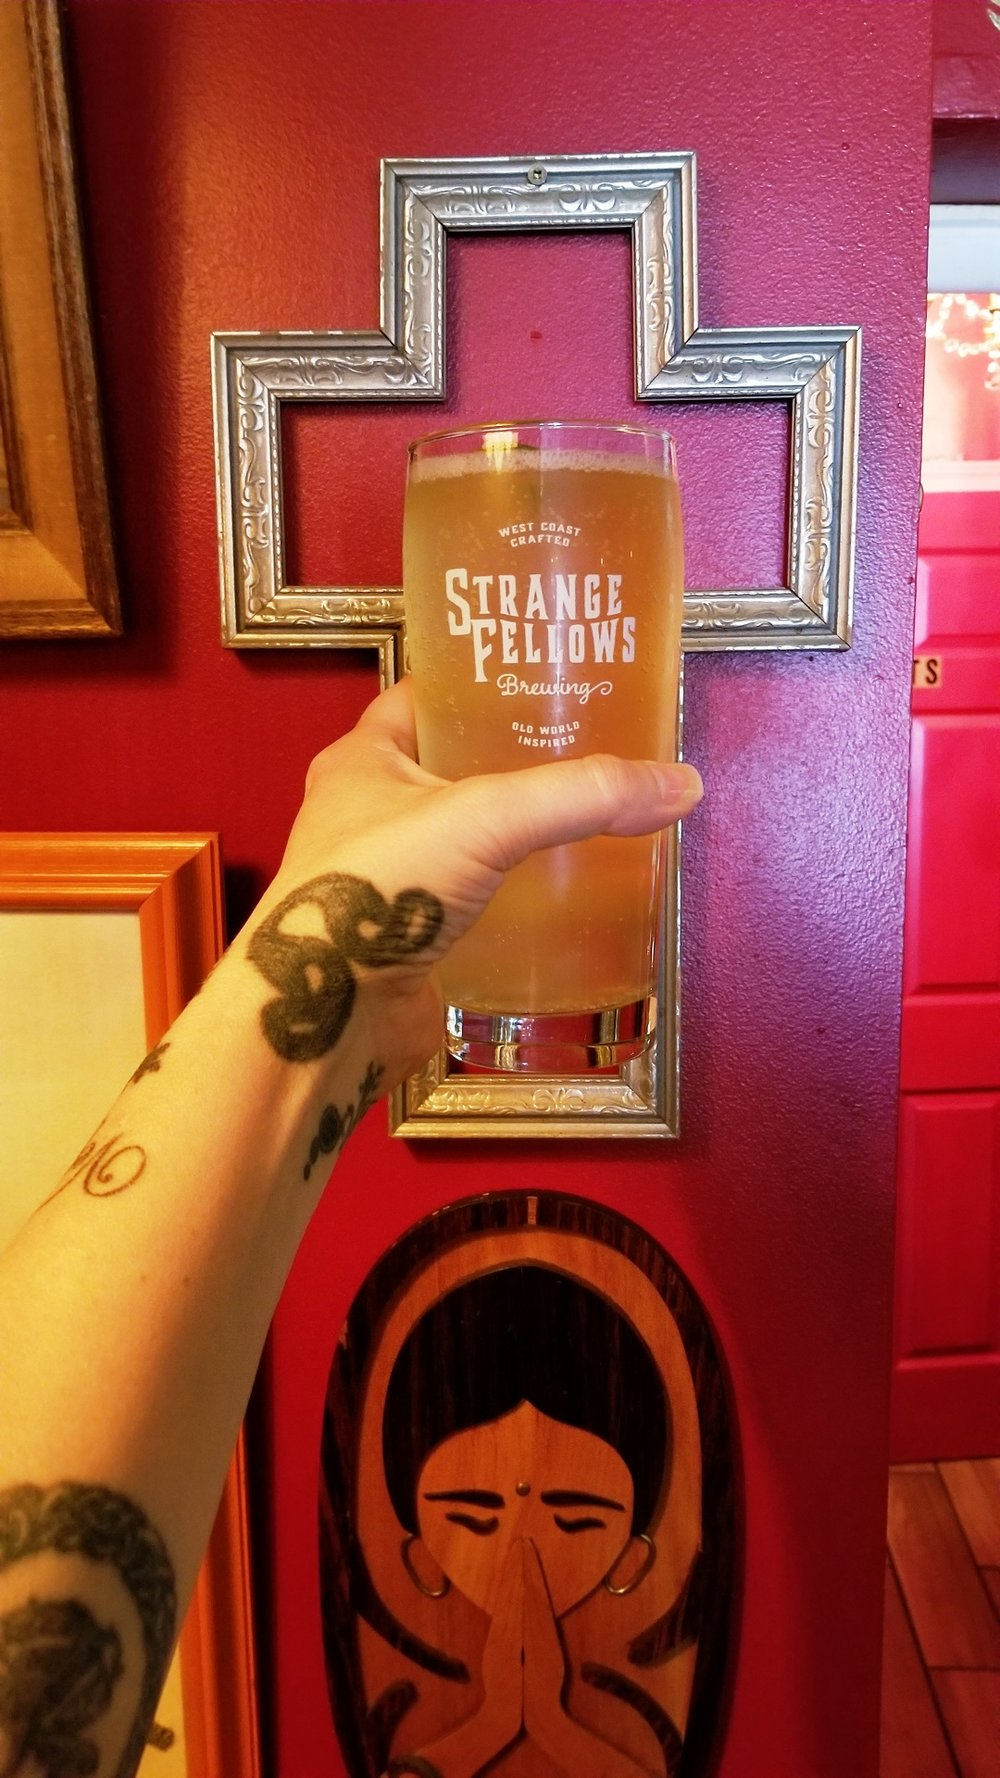 Strange Fellows Brewery